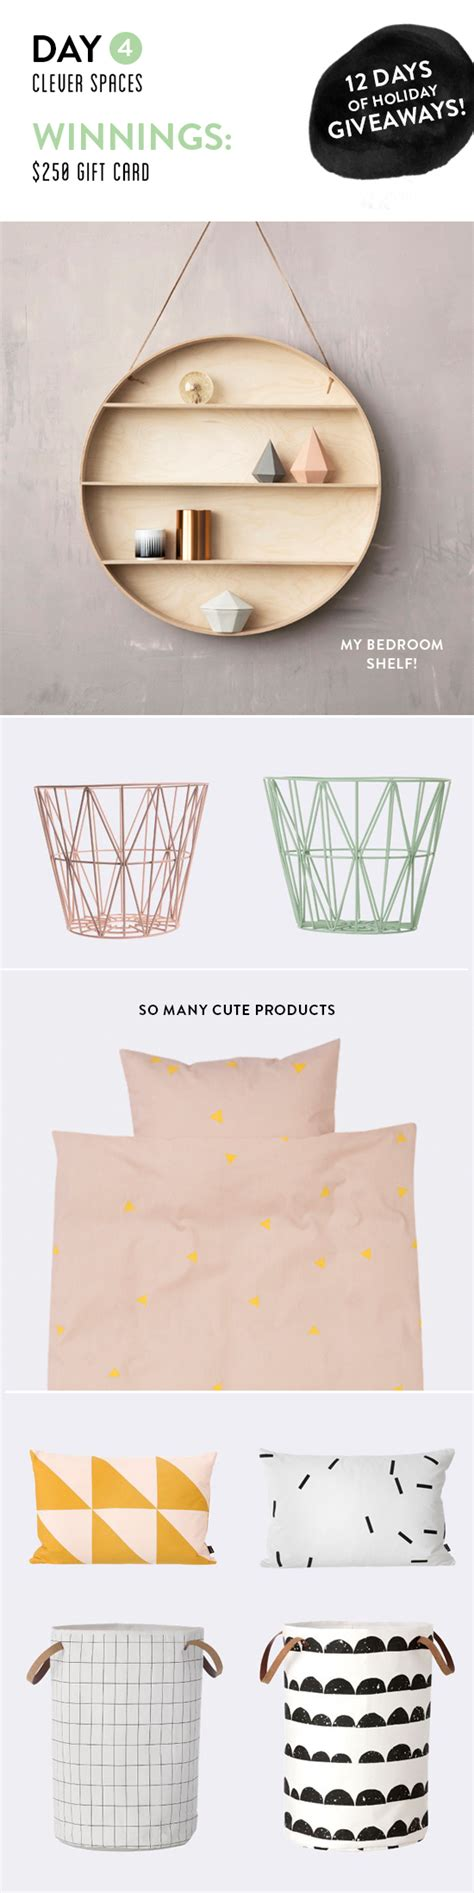 kat grabowski design love fest d e s i g n l o v e f e s t 187 giveaway clever spaces